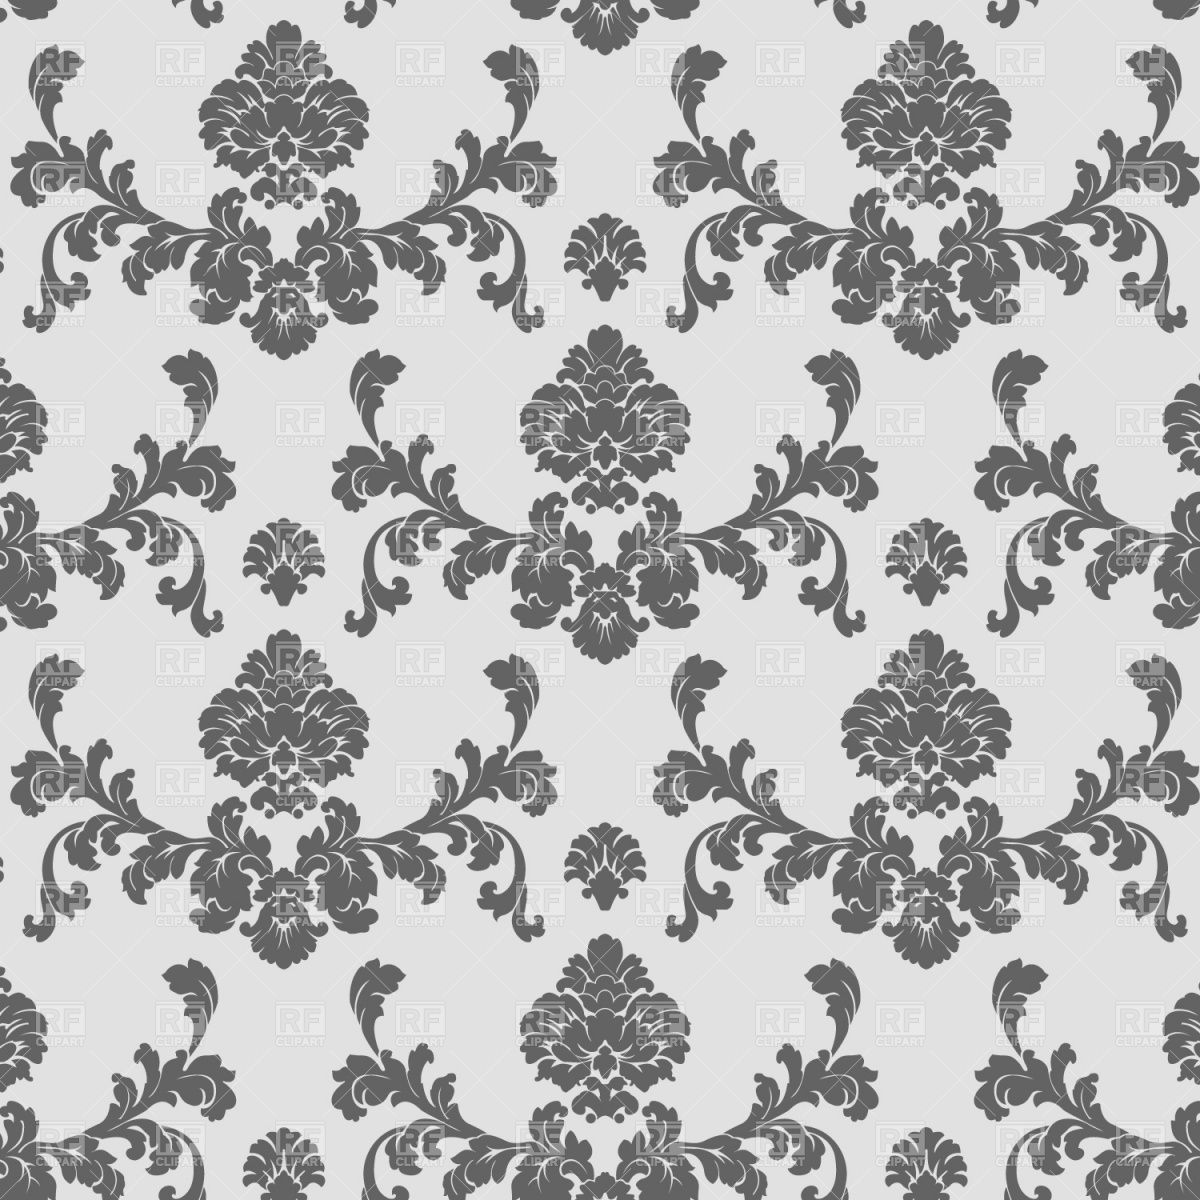 Pin on wallpaper referances. Pattern clipart classic